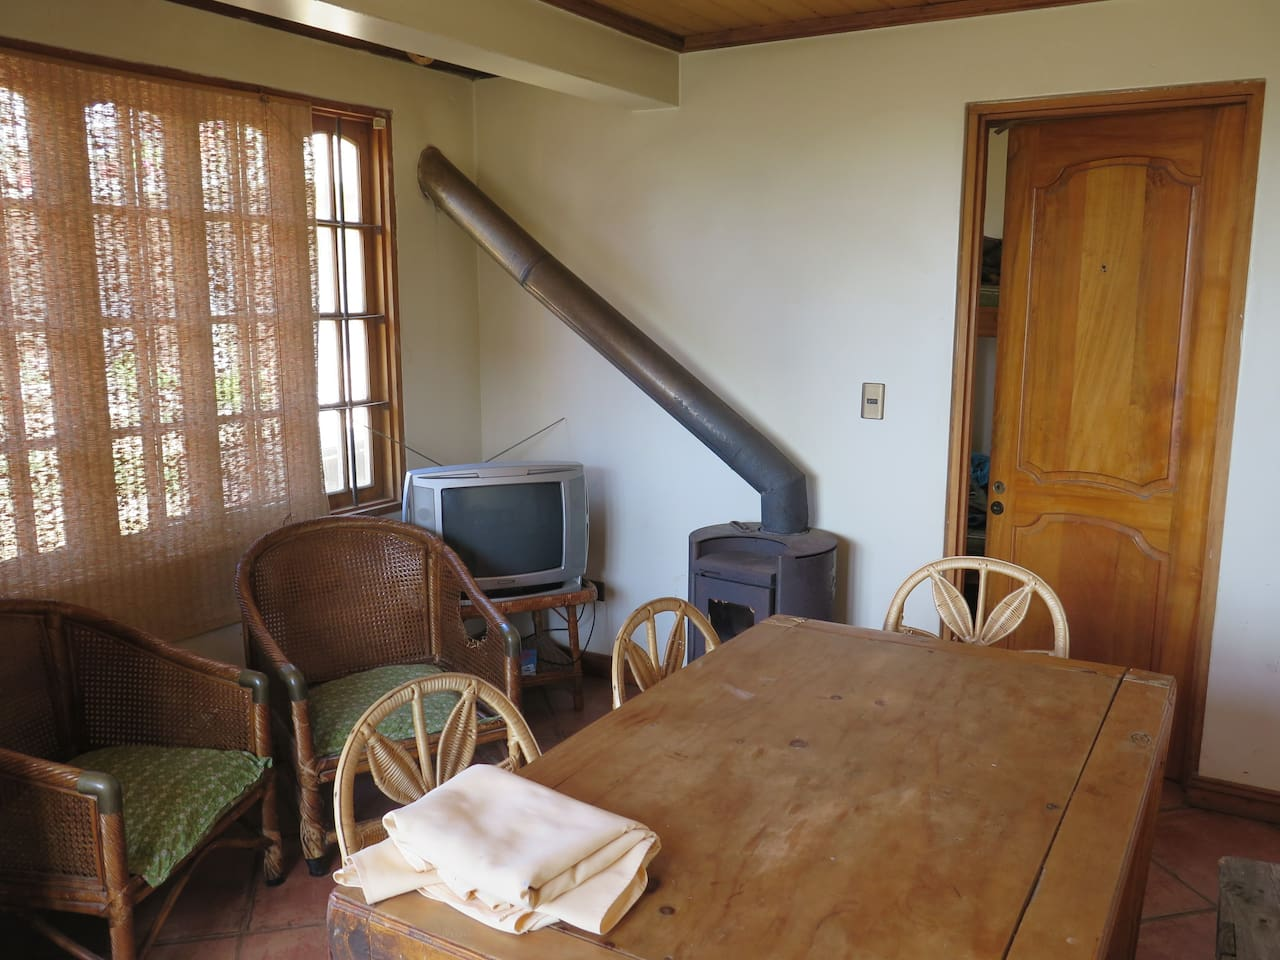 Living area with dining table and slow combustion heater for cooler nights.